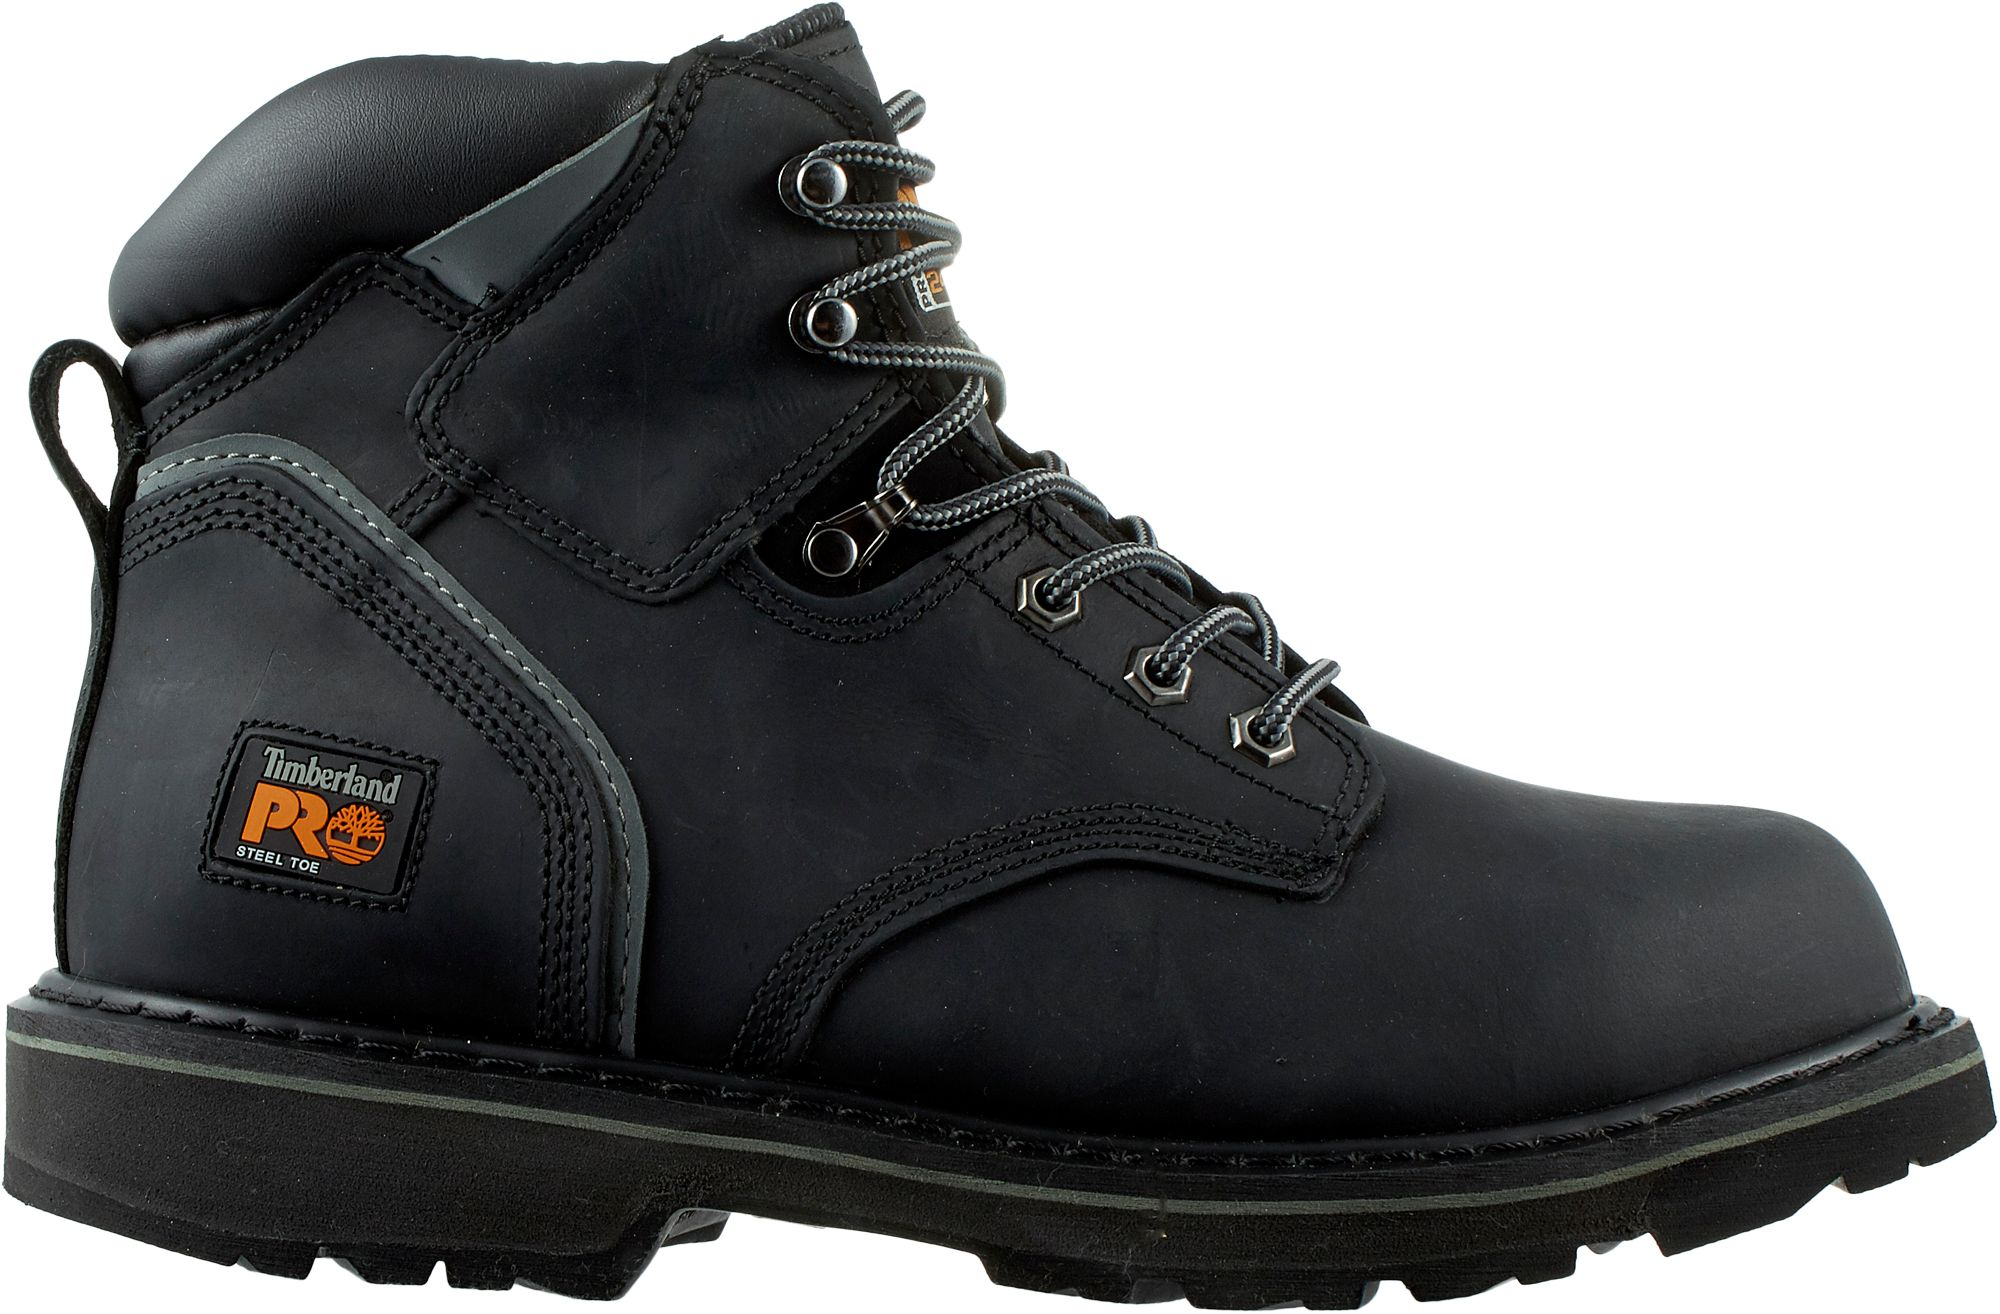 Timberland PRO Mens Jobsite Steel Toe Work Boots DICKS Sporting Goods  durable modeling b97357cd1bb3